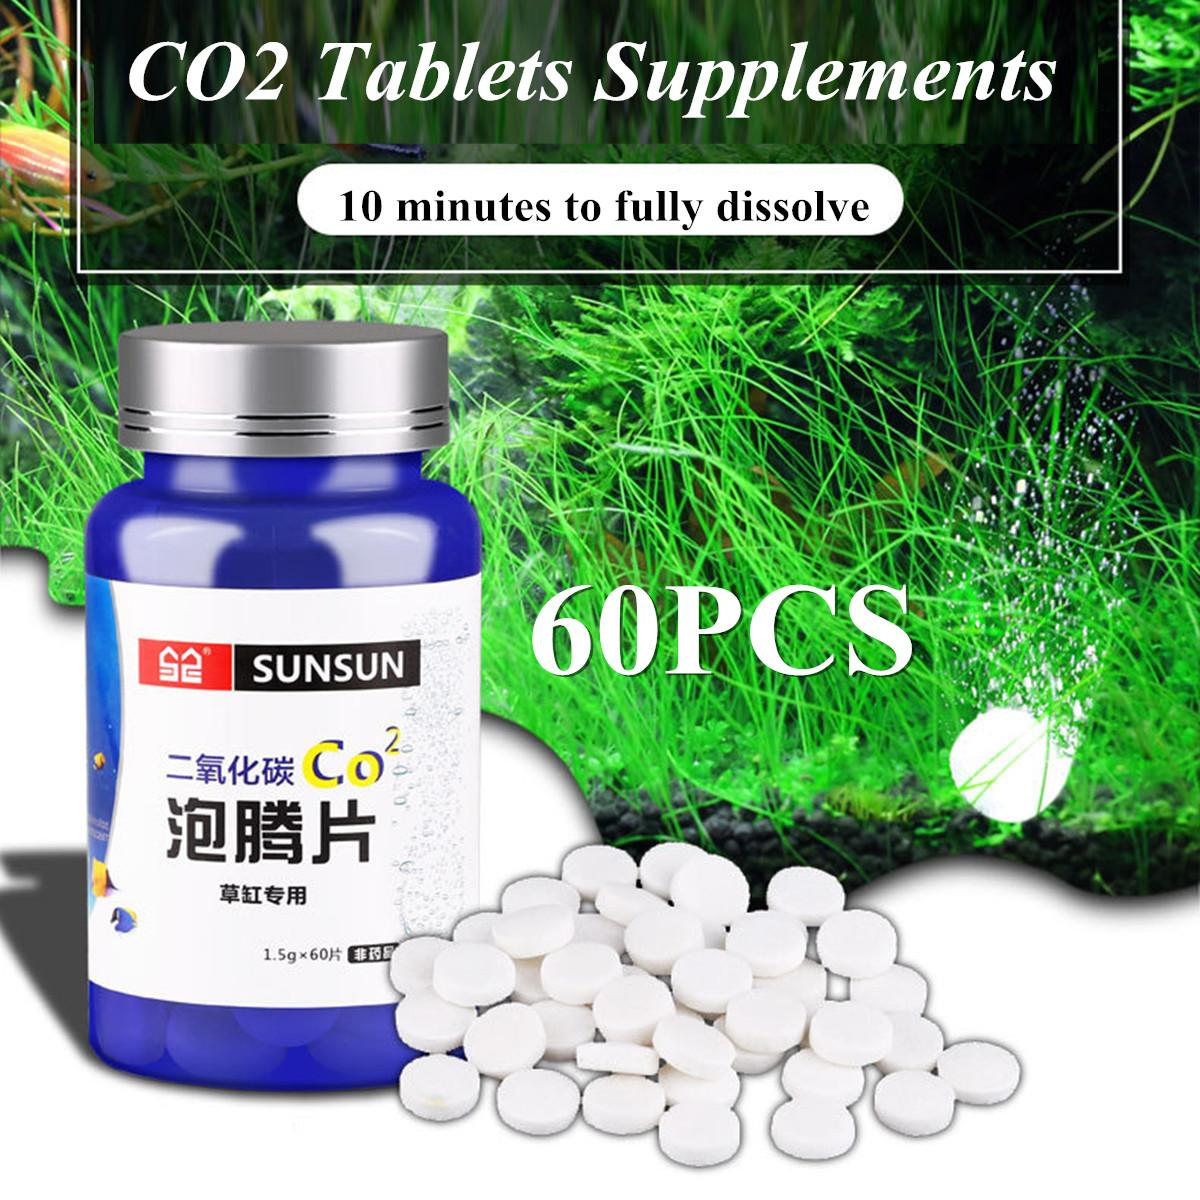 60Pcs CO2 Tablet Supplement Carbon Dioxide Diffuser Aquarium Fish Tank  Water Plants Growth